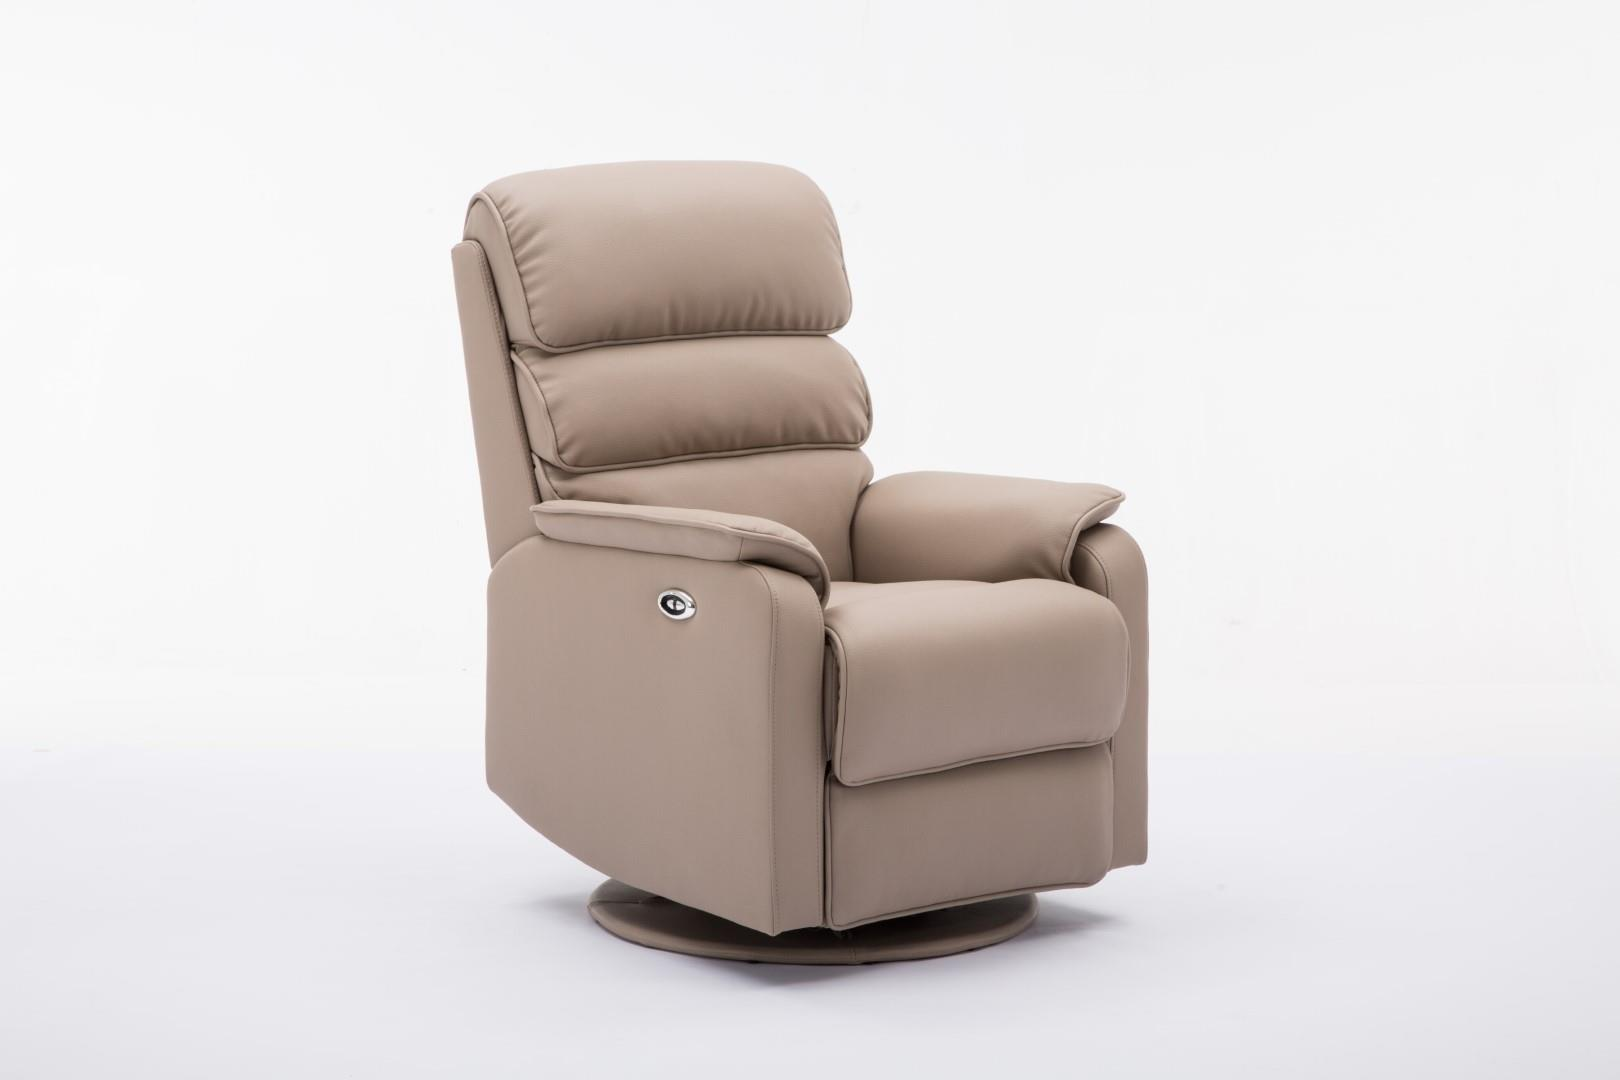 Swivel Recliner Chairs Details About Valencia Electric Swivel Recliner Chair In Soft Plush Faux Leather Pebble